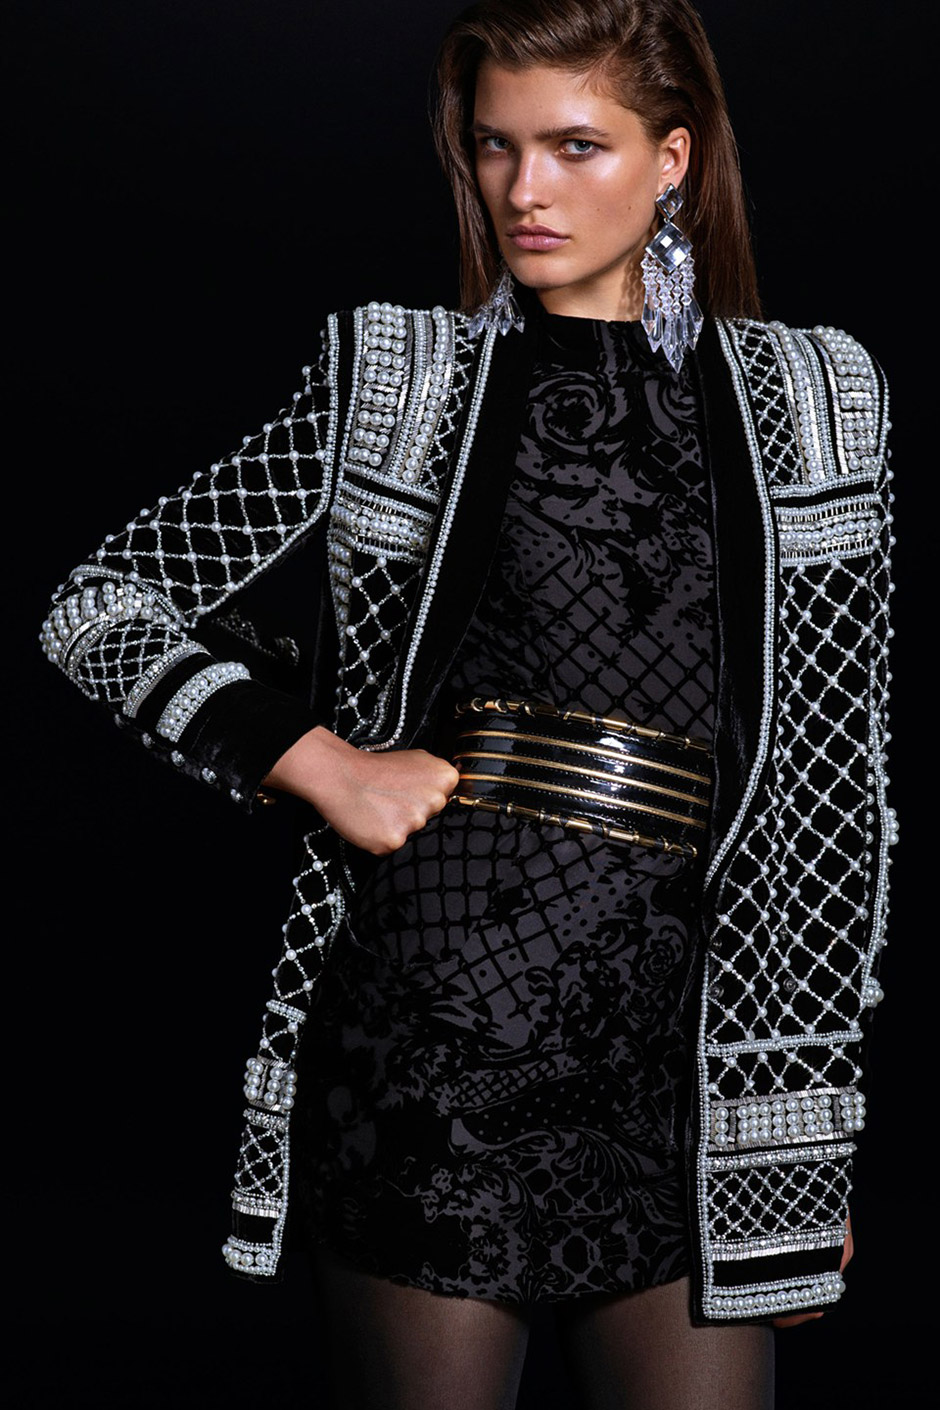 H&M and Balmain's luxe-meets-mass collaboration played with highlights from Balmain's first eight seasons under Olivier Rousteing's creative leadership, creating a retrospective range that made very clear that Rousteing and his team had managed to construct a unique, recognizable Balmain DNA within a very short period of time.